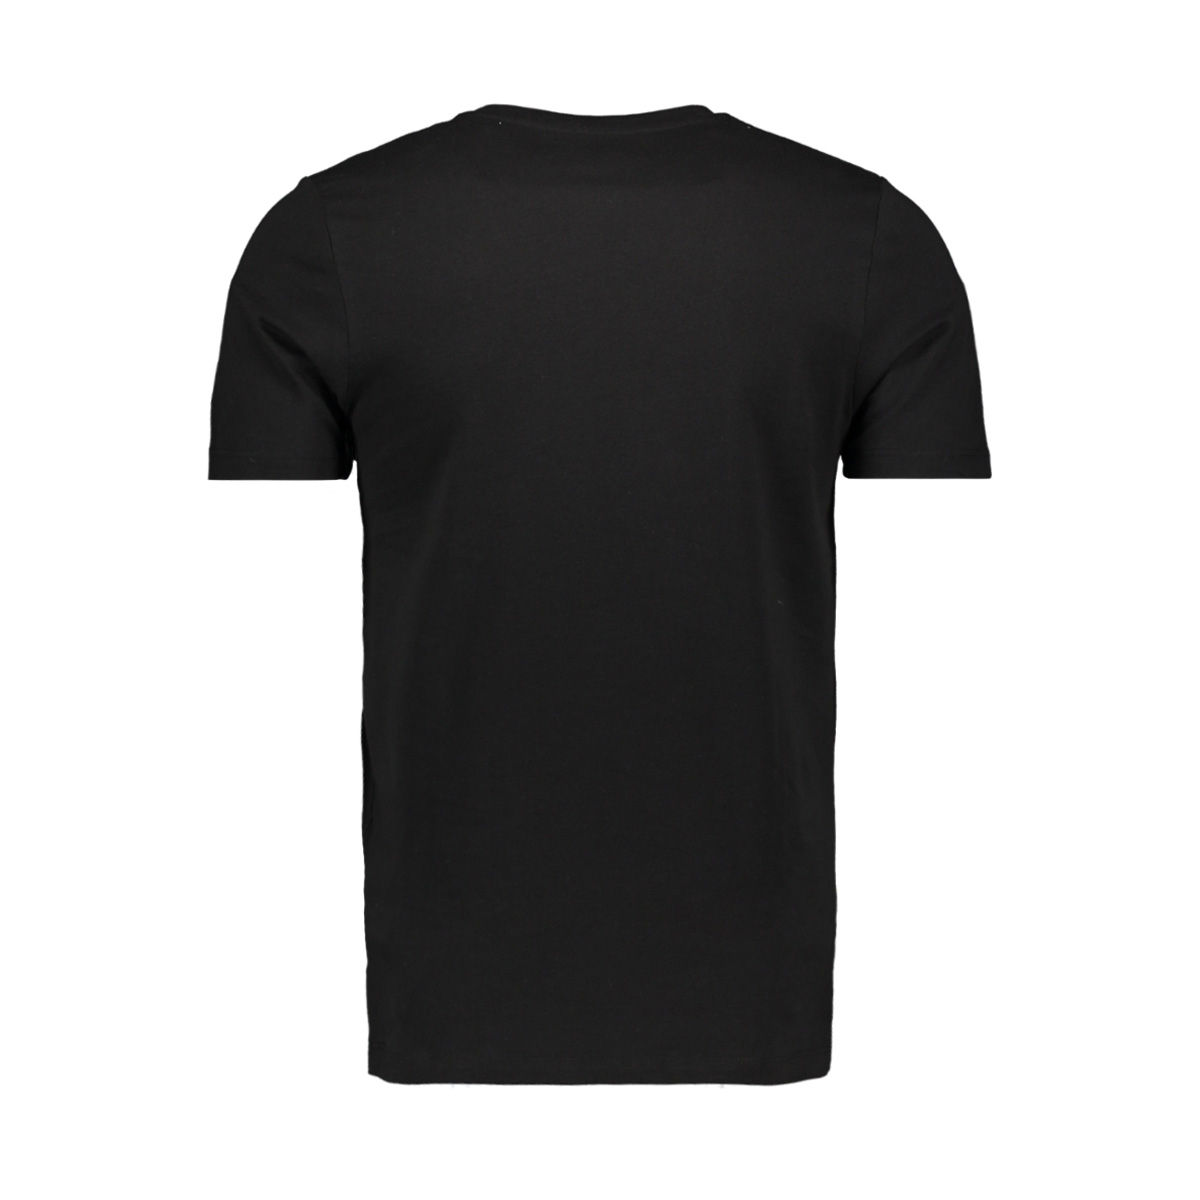 jcobooster  tee ss  crew neck feb 1 12160595 jack & jones t-shirt black/slim